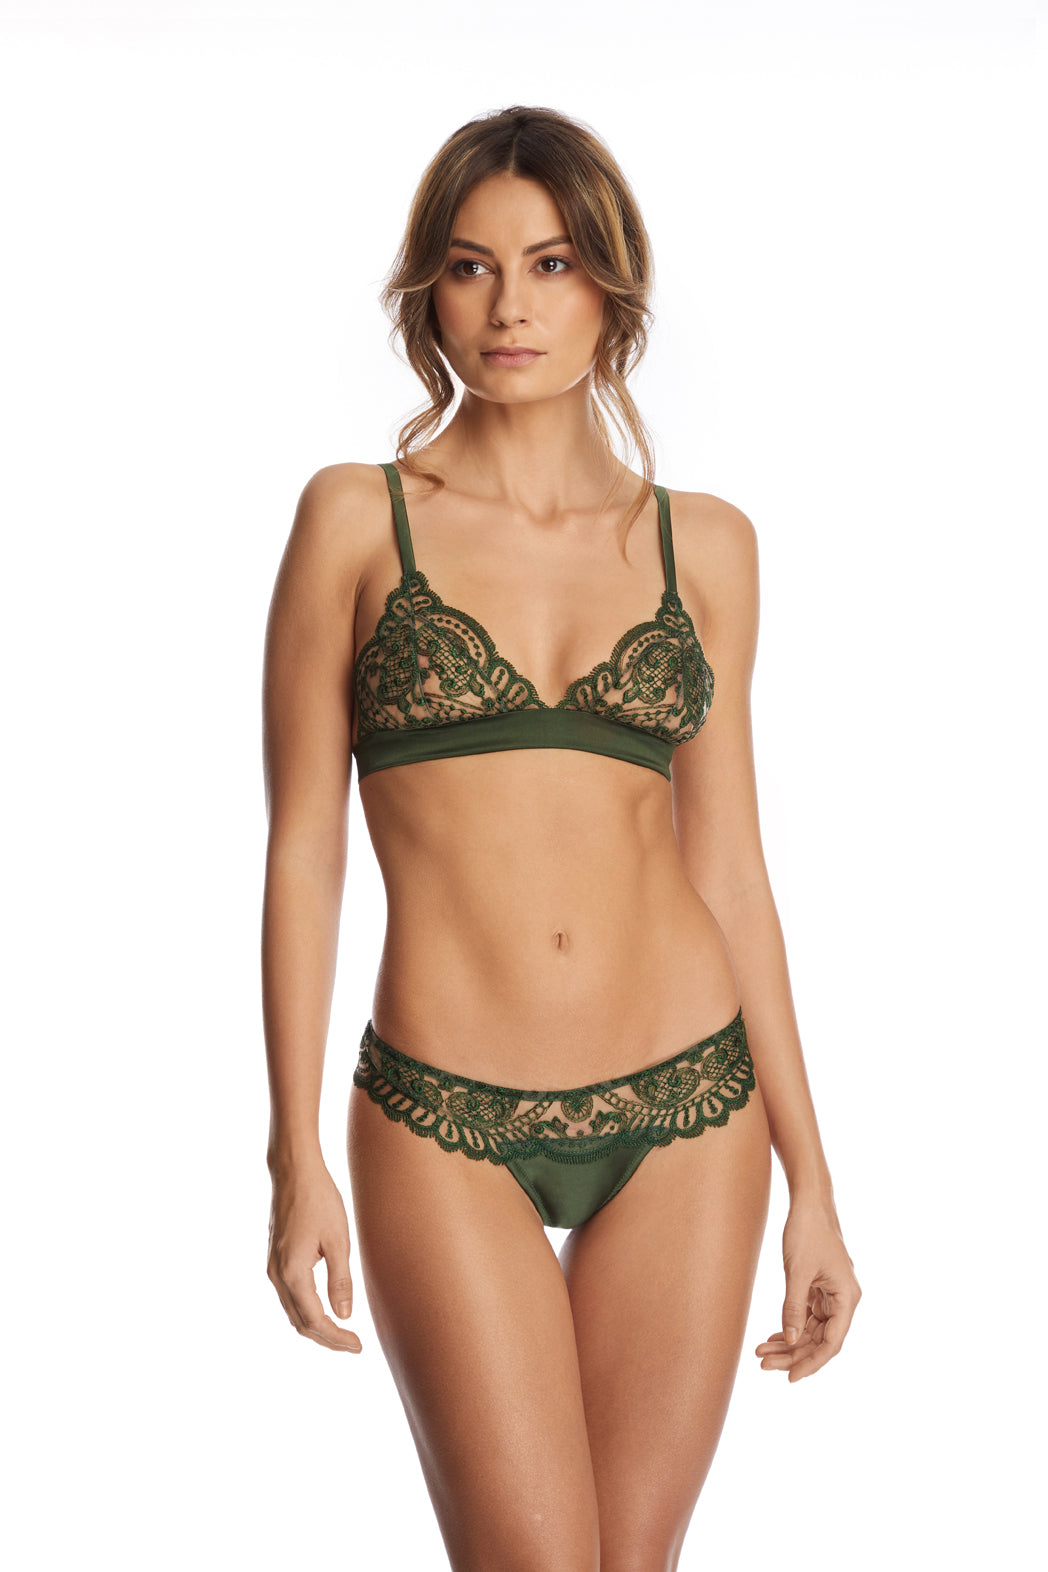 Bohemian Sundays Triangle Bra in Dark Green